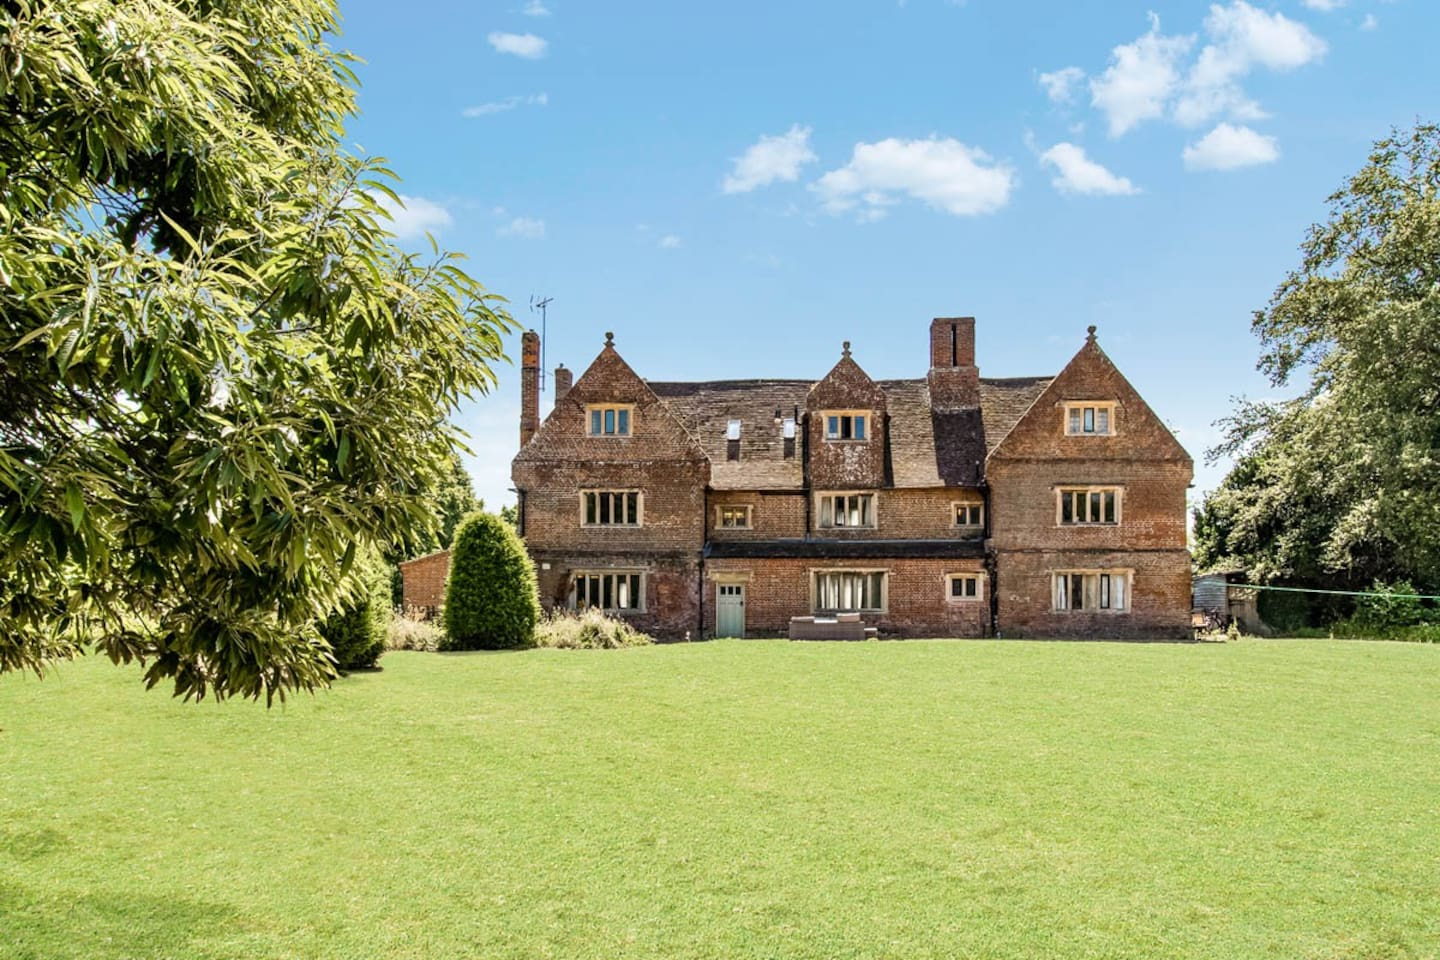 Escape from the bustle of life in our historic home set within a rural two-acre garden.